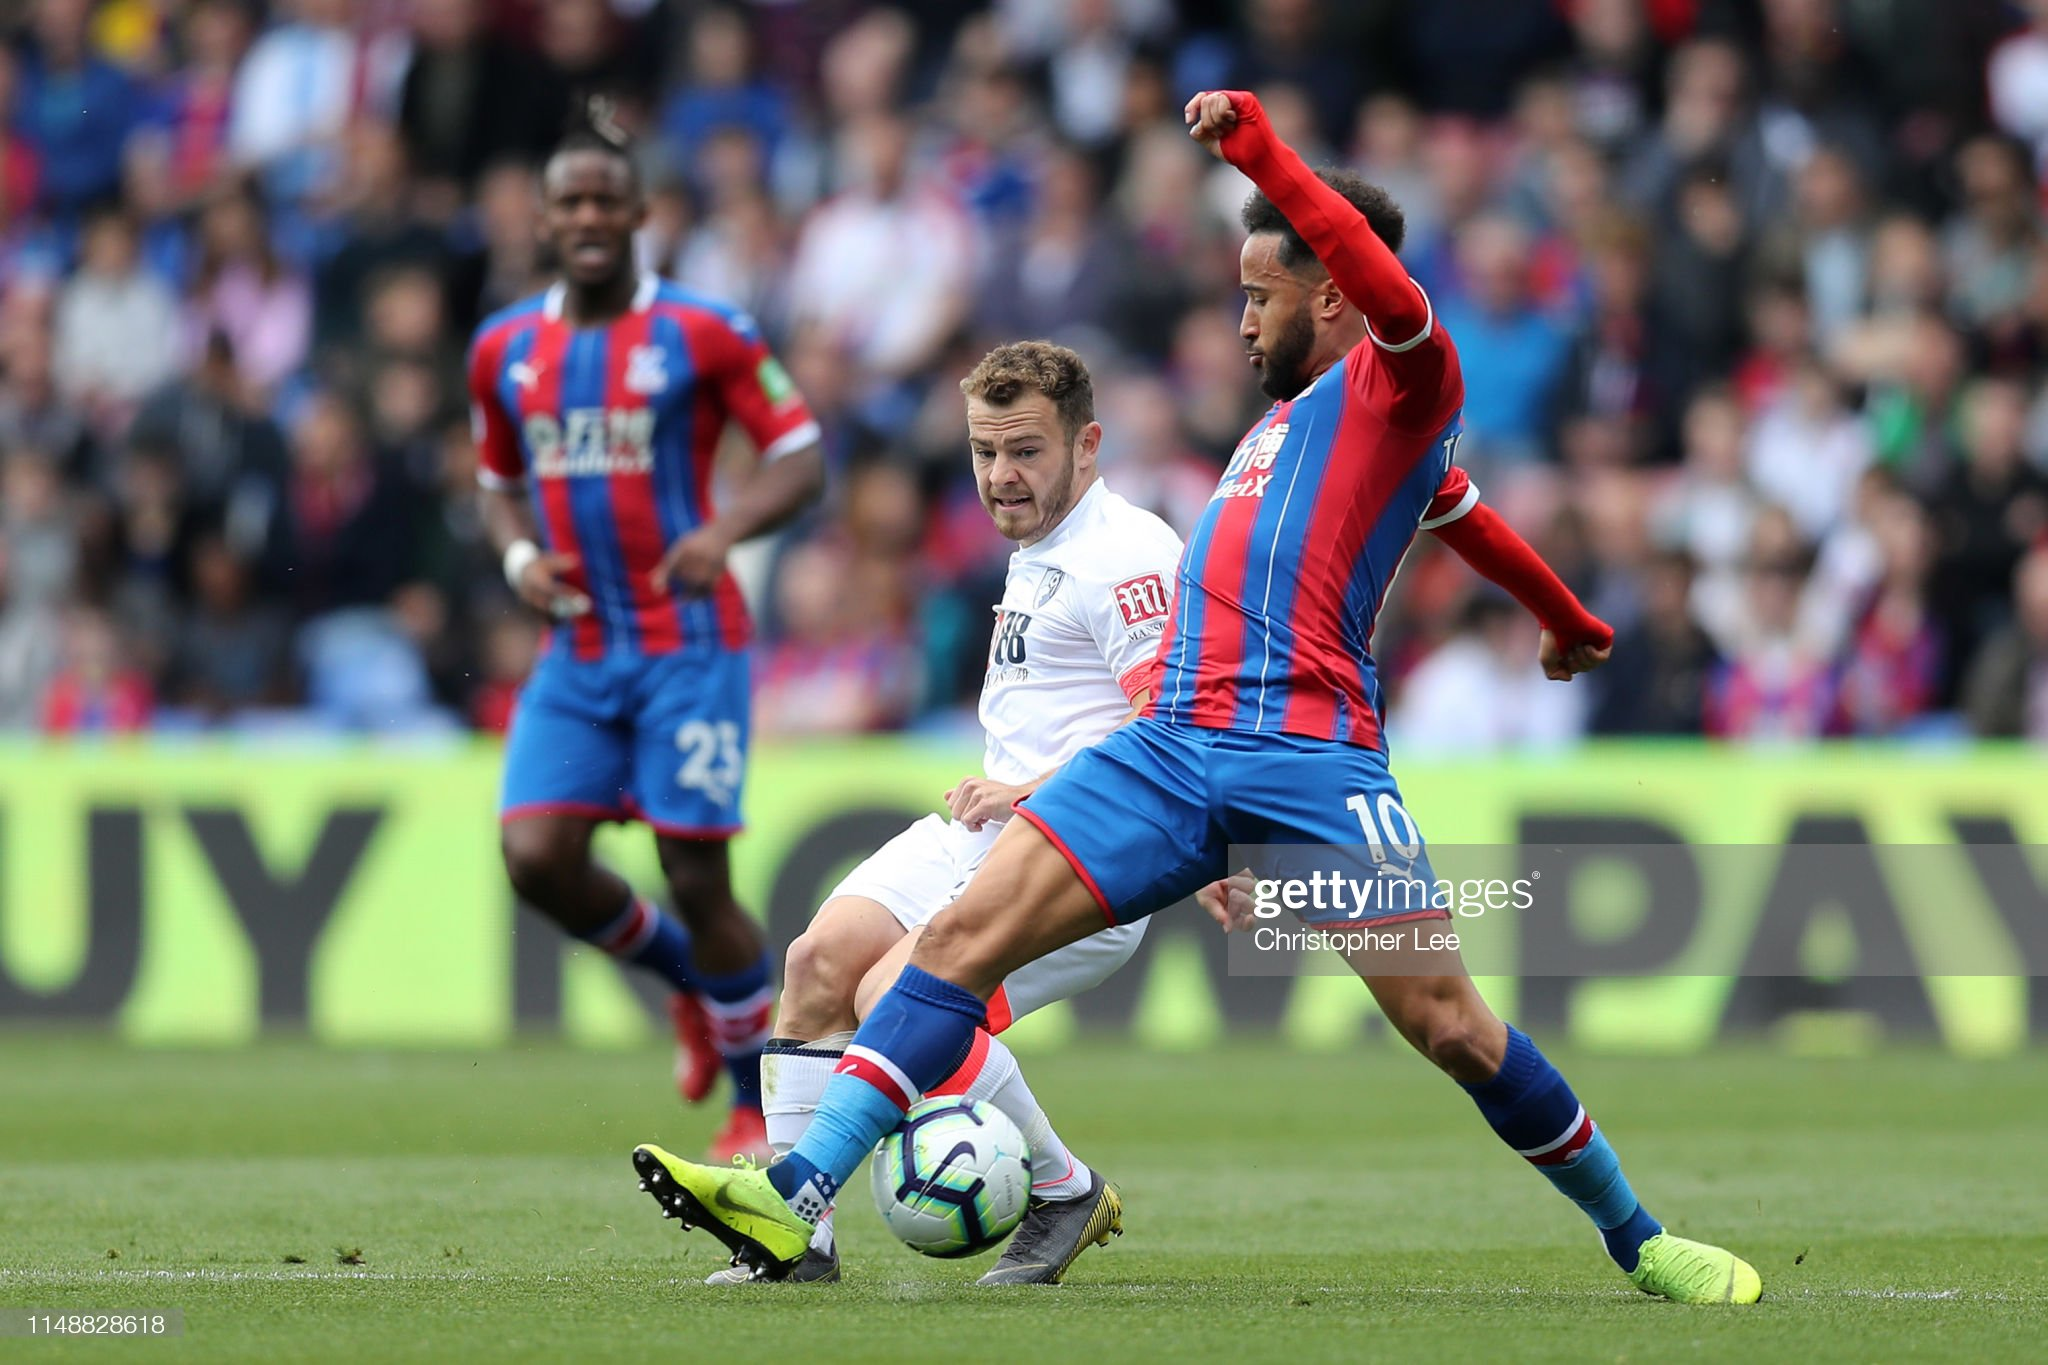 Crystal Palace v Bournemouth preview, prediction and odds